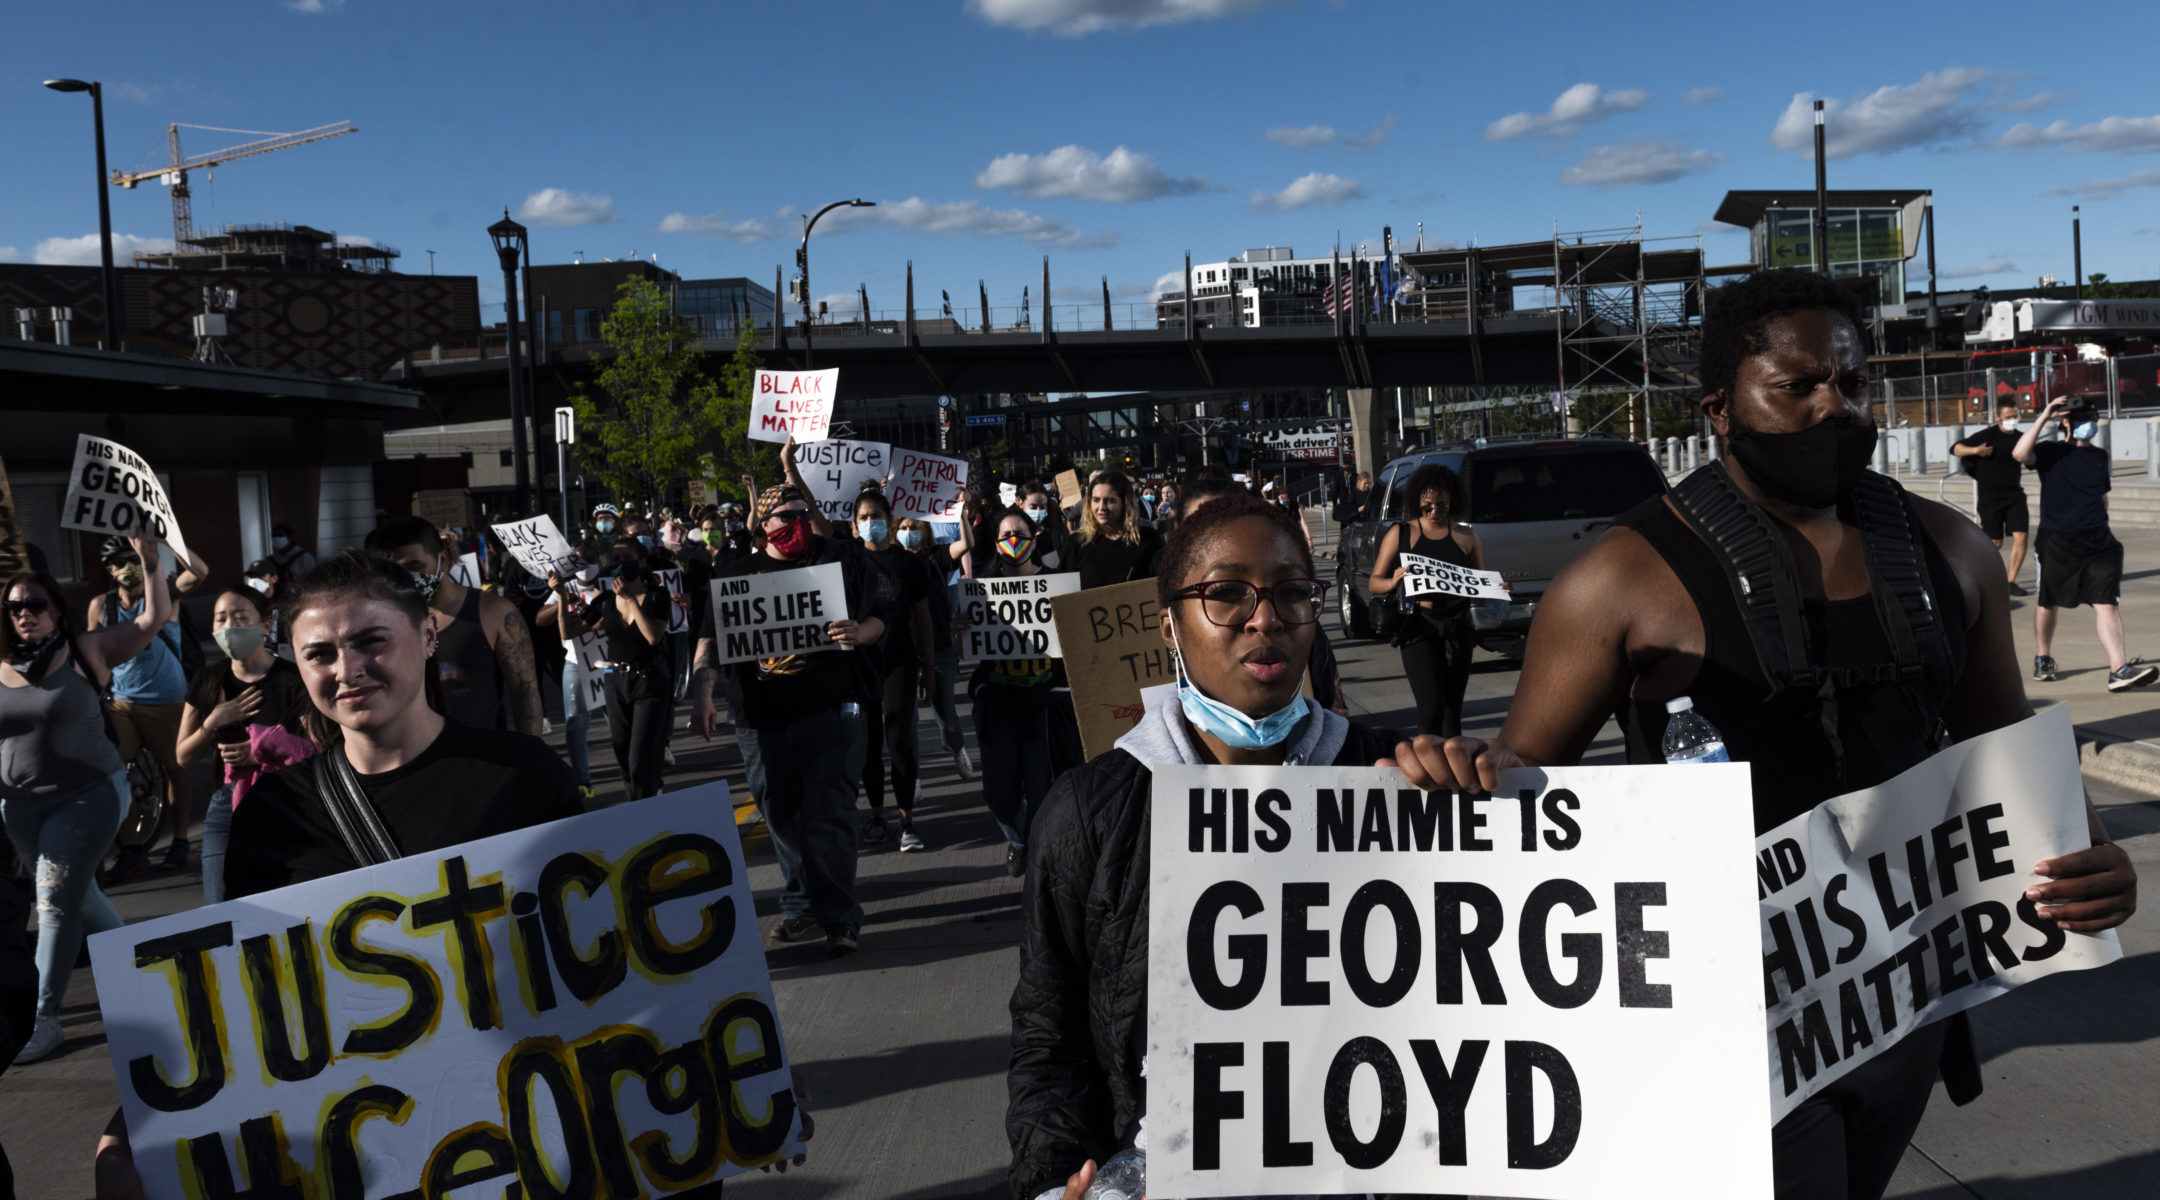 Protesters in Minneapolis, Minnesota, demonstrated against the death in police custody of George Floyd, May 29, 2020. (Photo/Stephen Maturen/Getty Images)